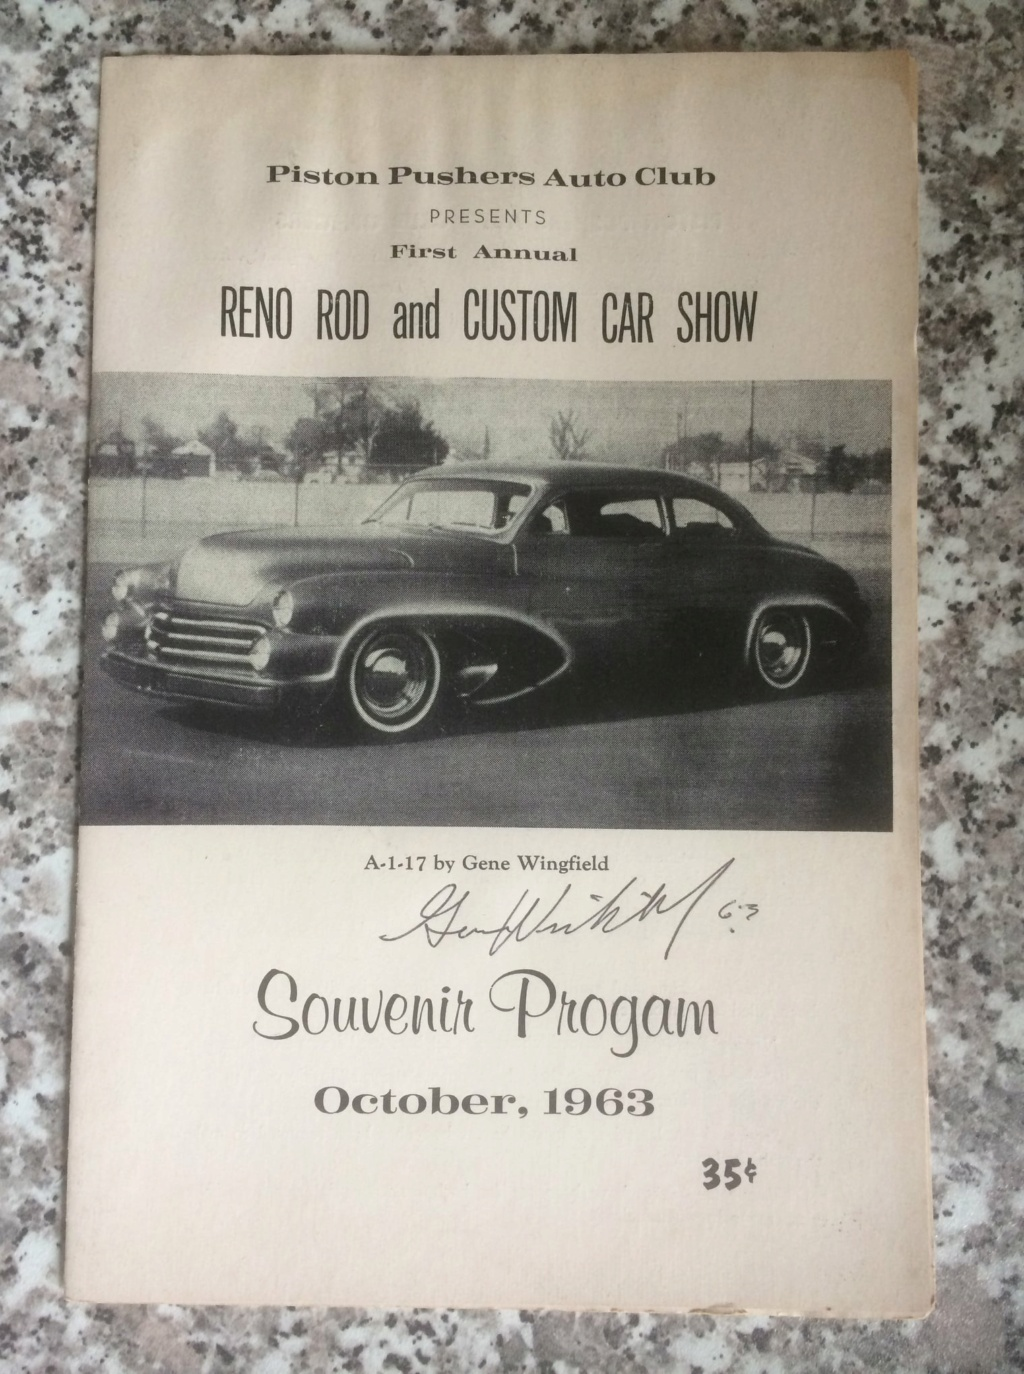 Vintage Car Show pics (50s, 60s and 70s) - Page 23 12297610